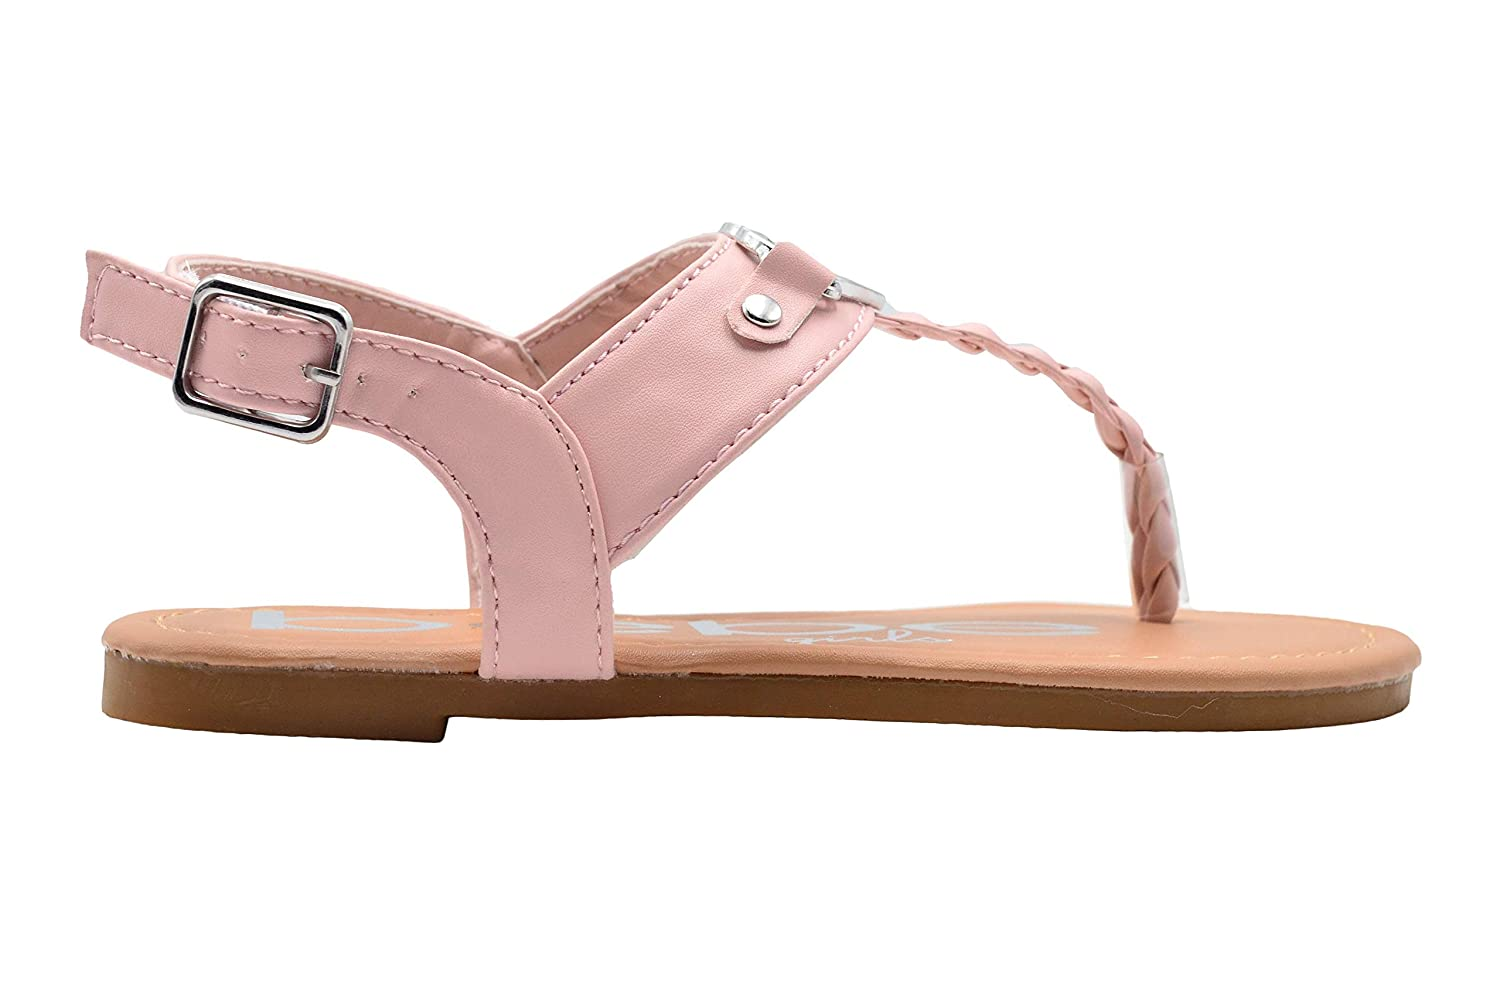 bebe Girls Fashion Sandals Slingback Thong Summer Flat Shoes with Braided Strap